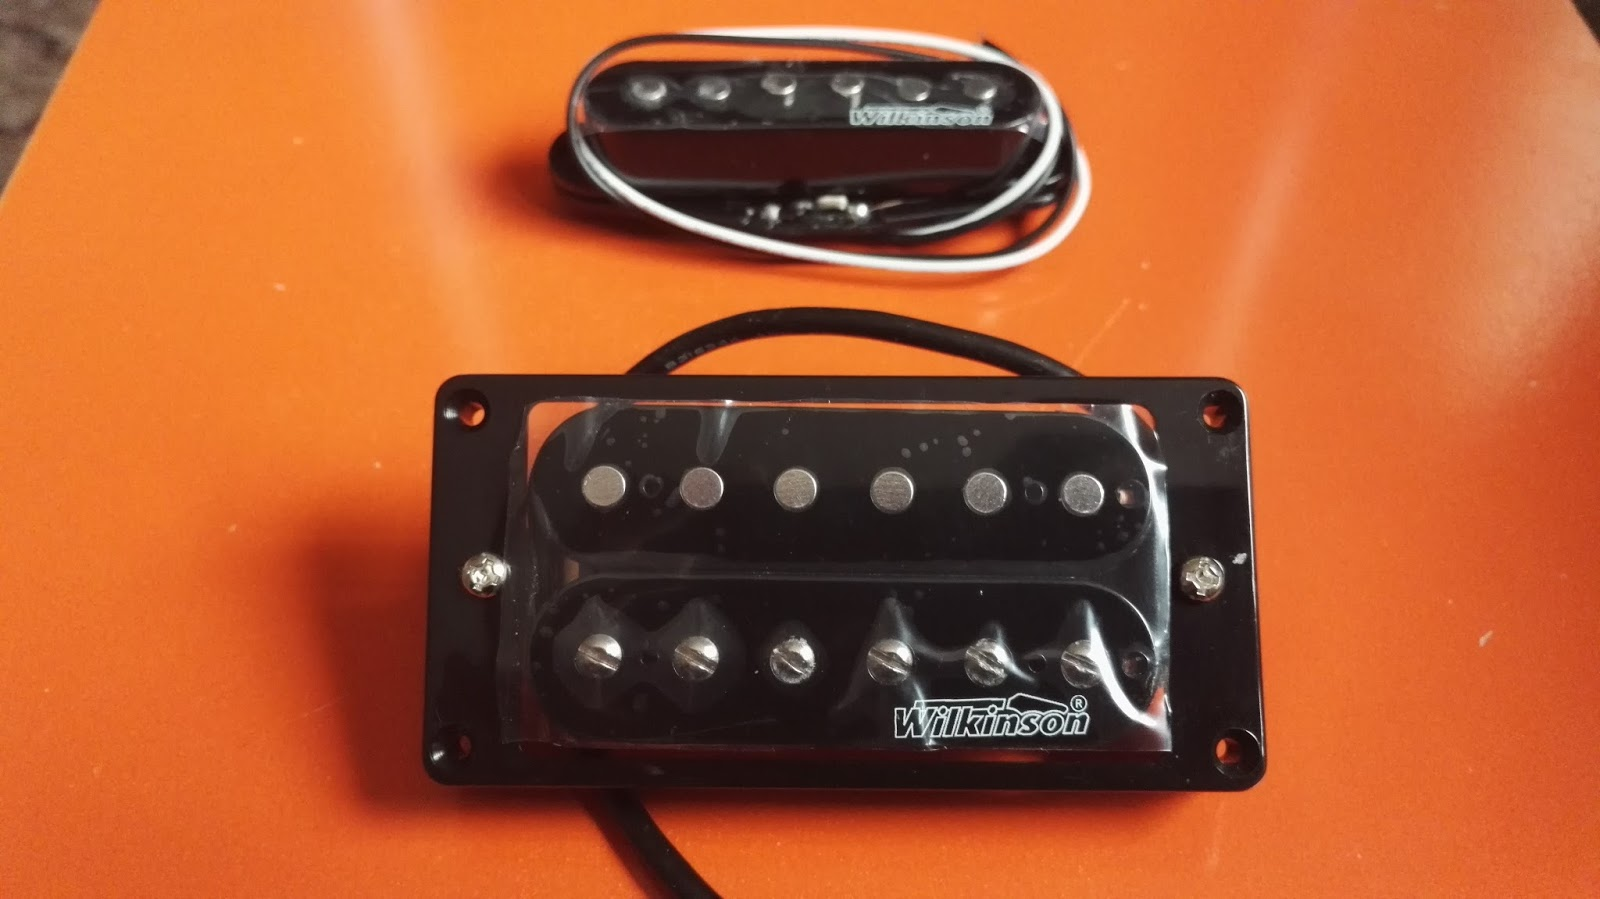 Wilkinson Humbucker Pickups Wiring Trusted Diagram Pickup Vintage 60s Mwvs And Hot Mwhb Review Lindy Fralin